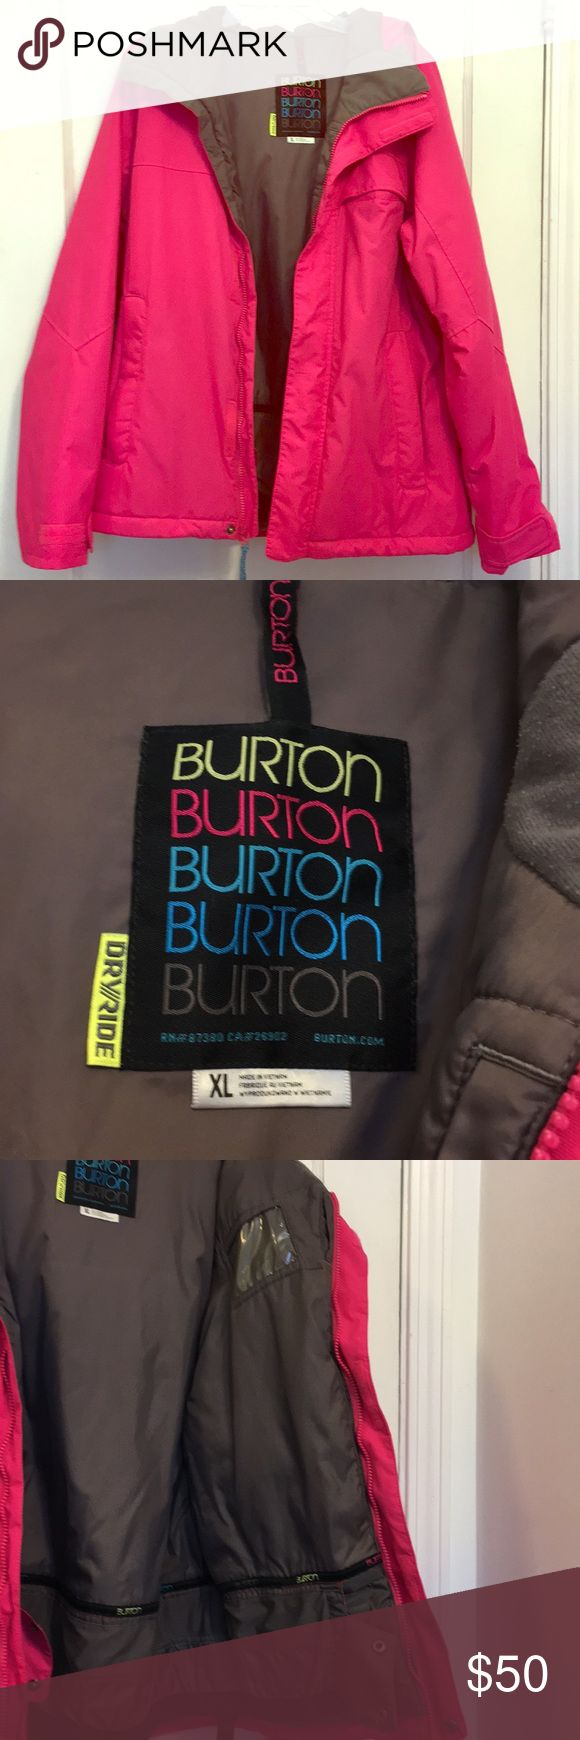 Burton Pink DryRide Ski/Snowboard Jacket EUC Beautiful Burton hot pink with dark gray lining DryRide snow jacket in EUC. Pretty much perfect, only worn a few times and looks brand new. Inside ID pocket. Excellent quality, very warm, just didn't get any use in my mom's closet. Burton Jackets & Coats Puffers